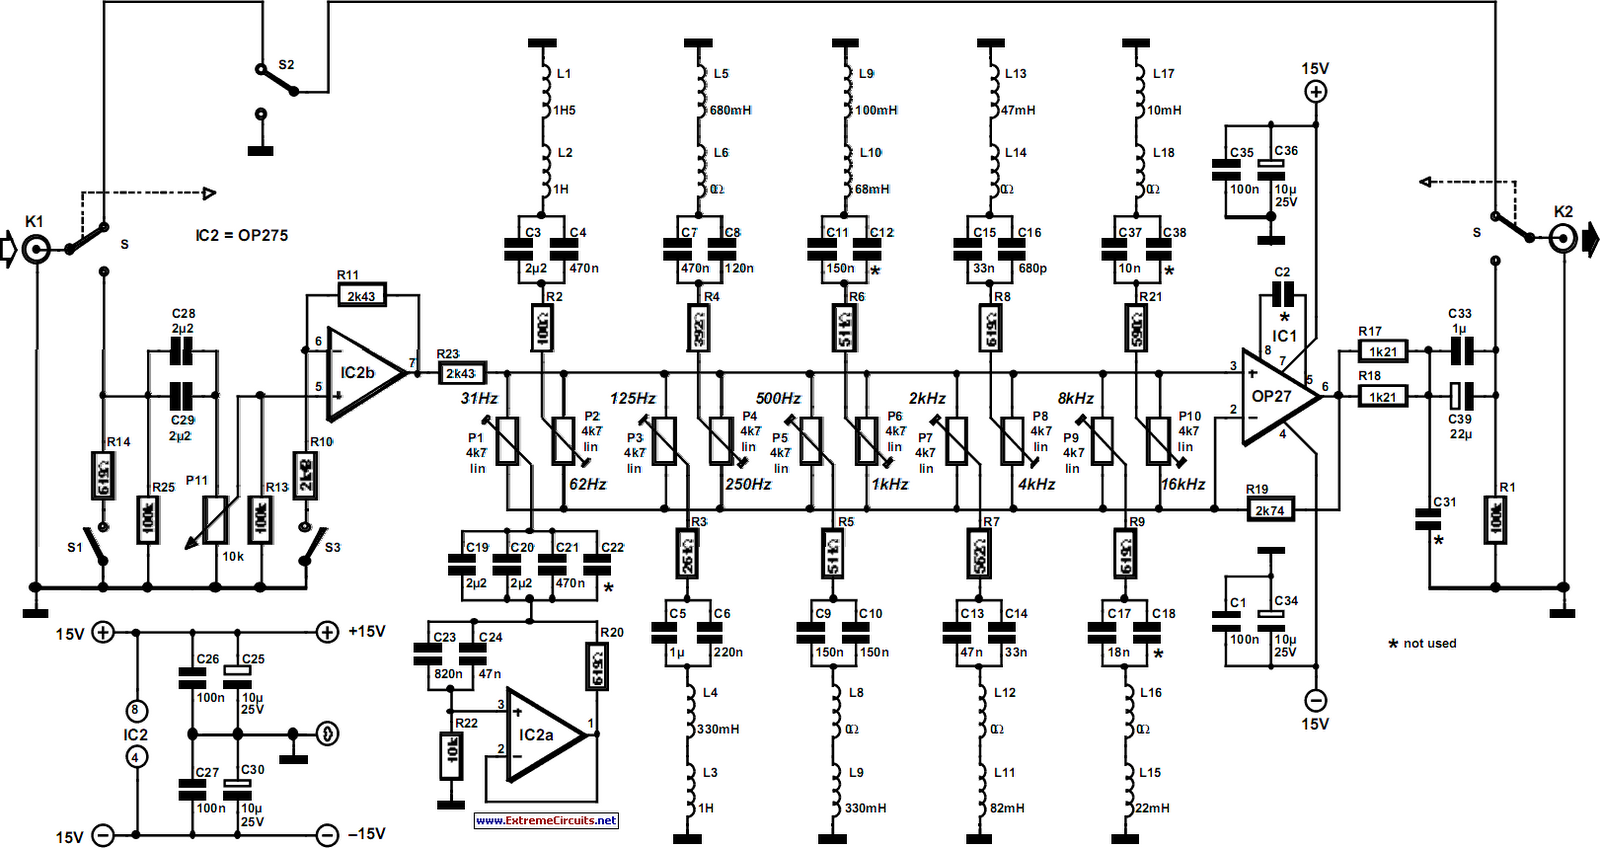 5 Band Equalizer Circuit Diagram FULL HD Version Circuit Diagram -  THUY-MANUAL.UNIFORMCREW.ITDiagram Database And Images